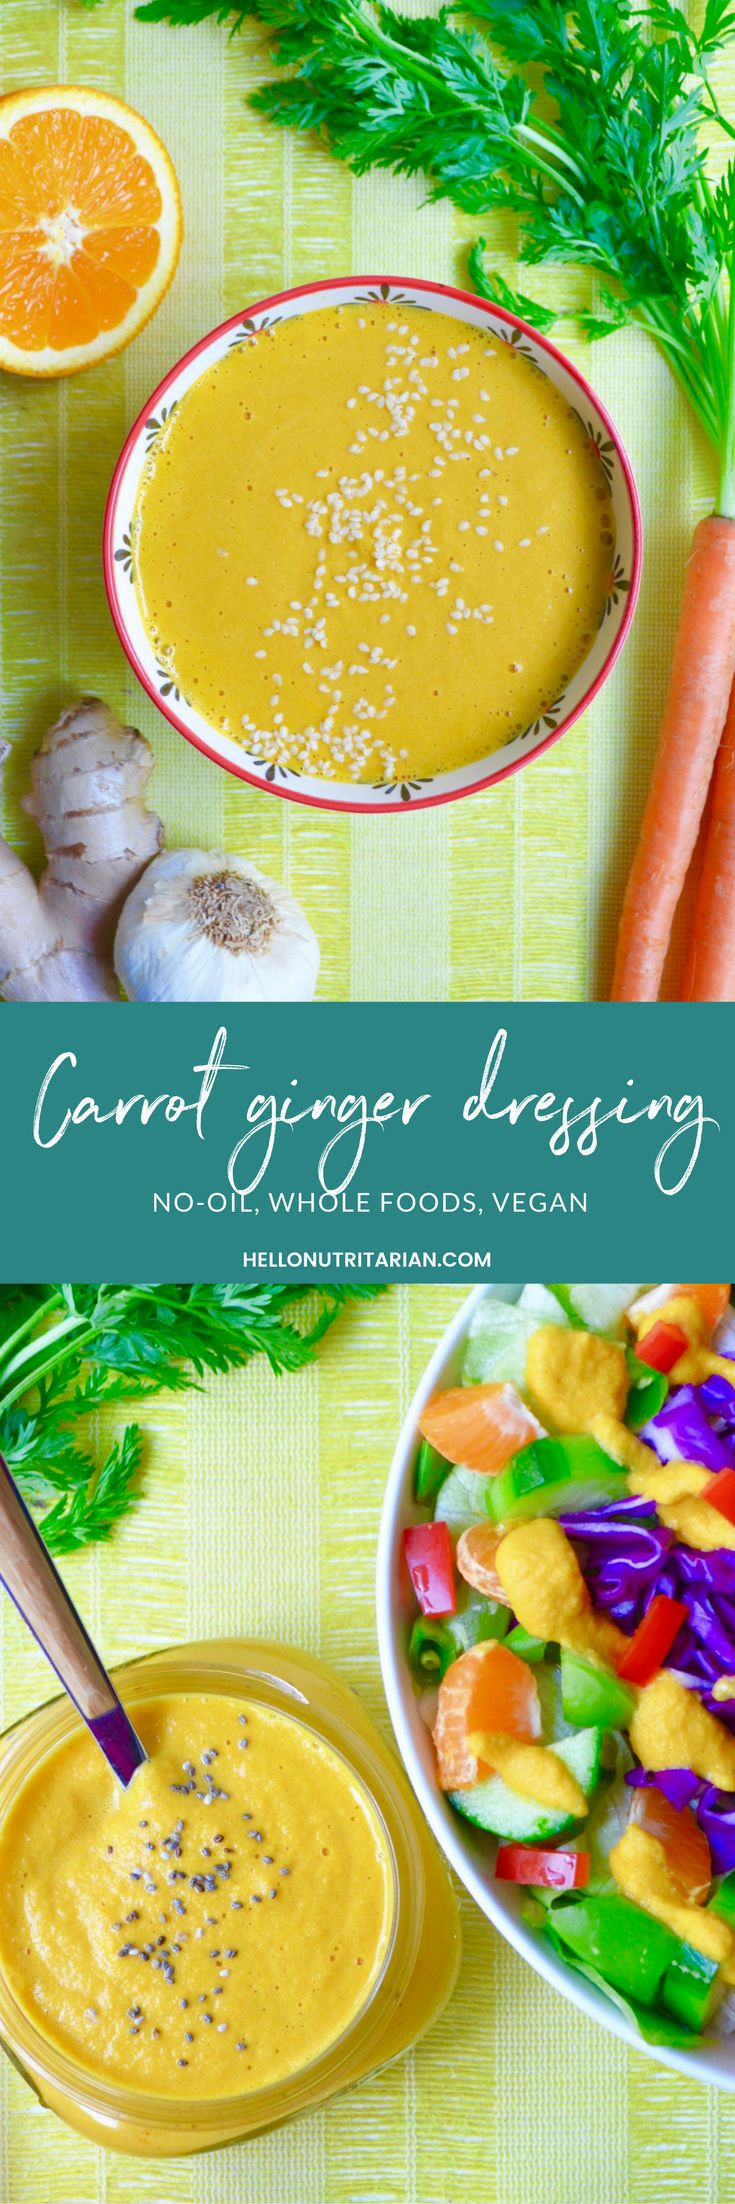 88 best no oil vegan recipes images on pinterest oil free carrot ginger dressing recipe no oil vegan nutritarian whole food forumfinder Choice Image